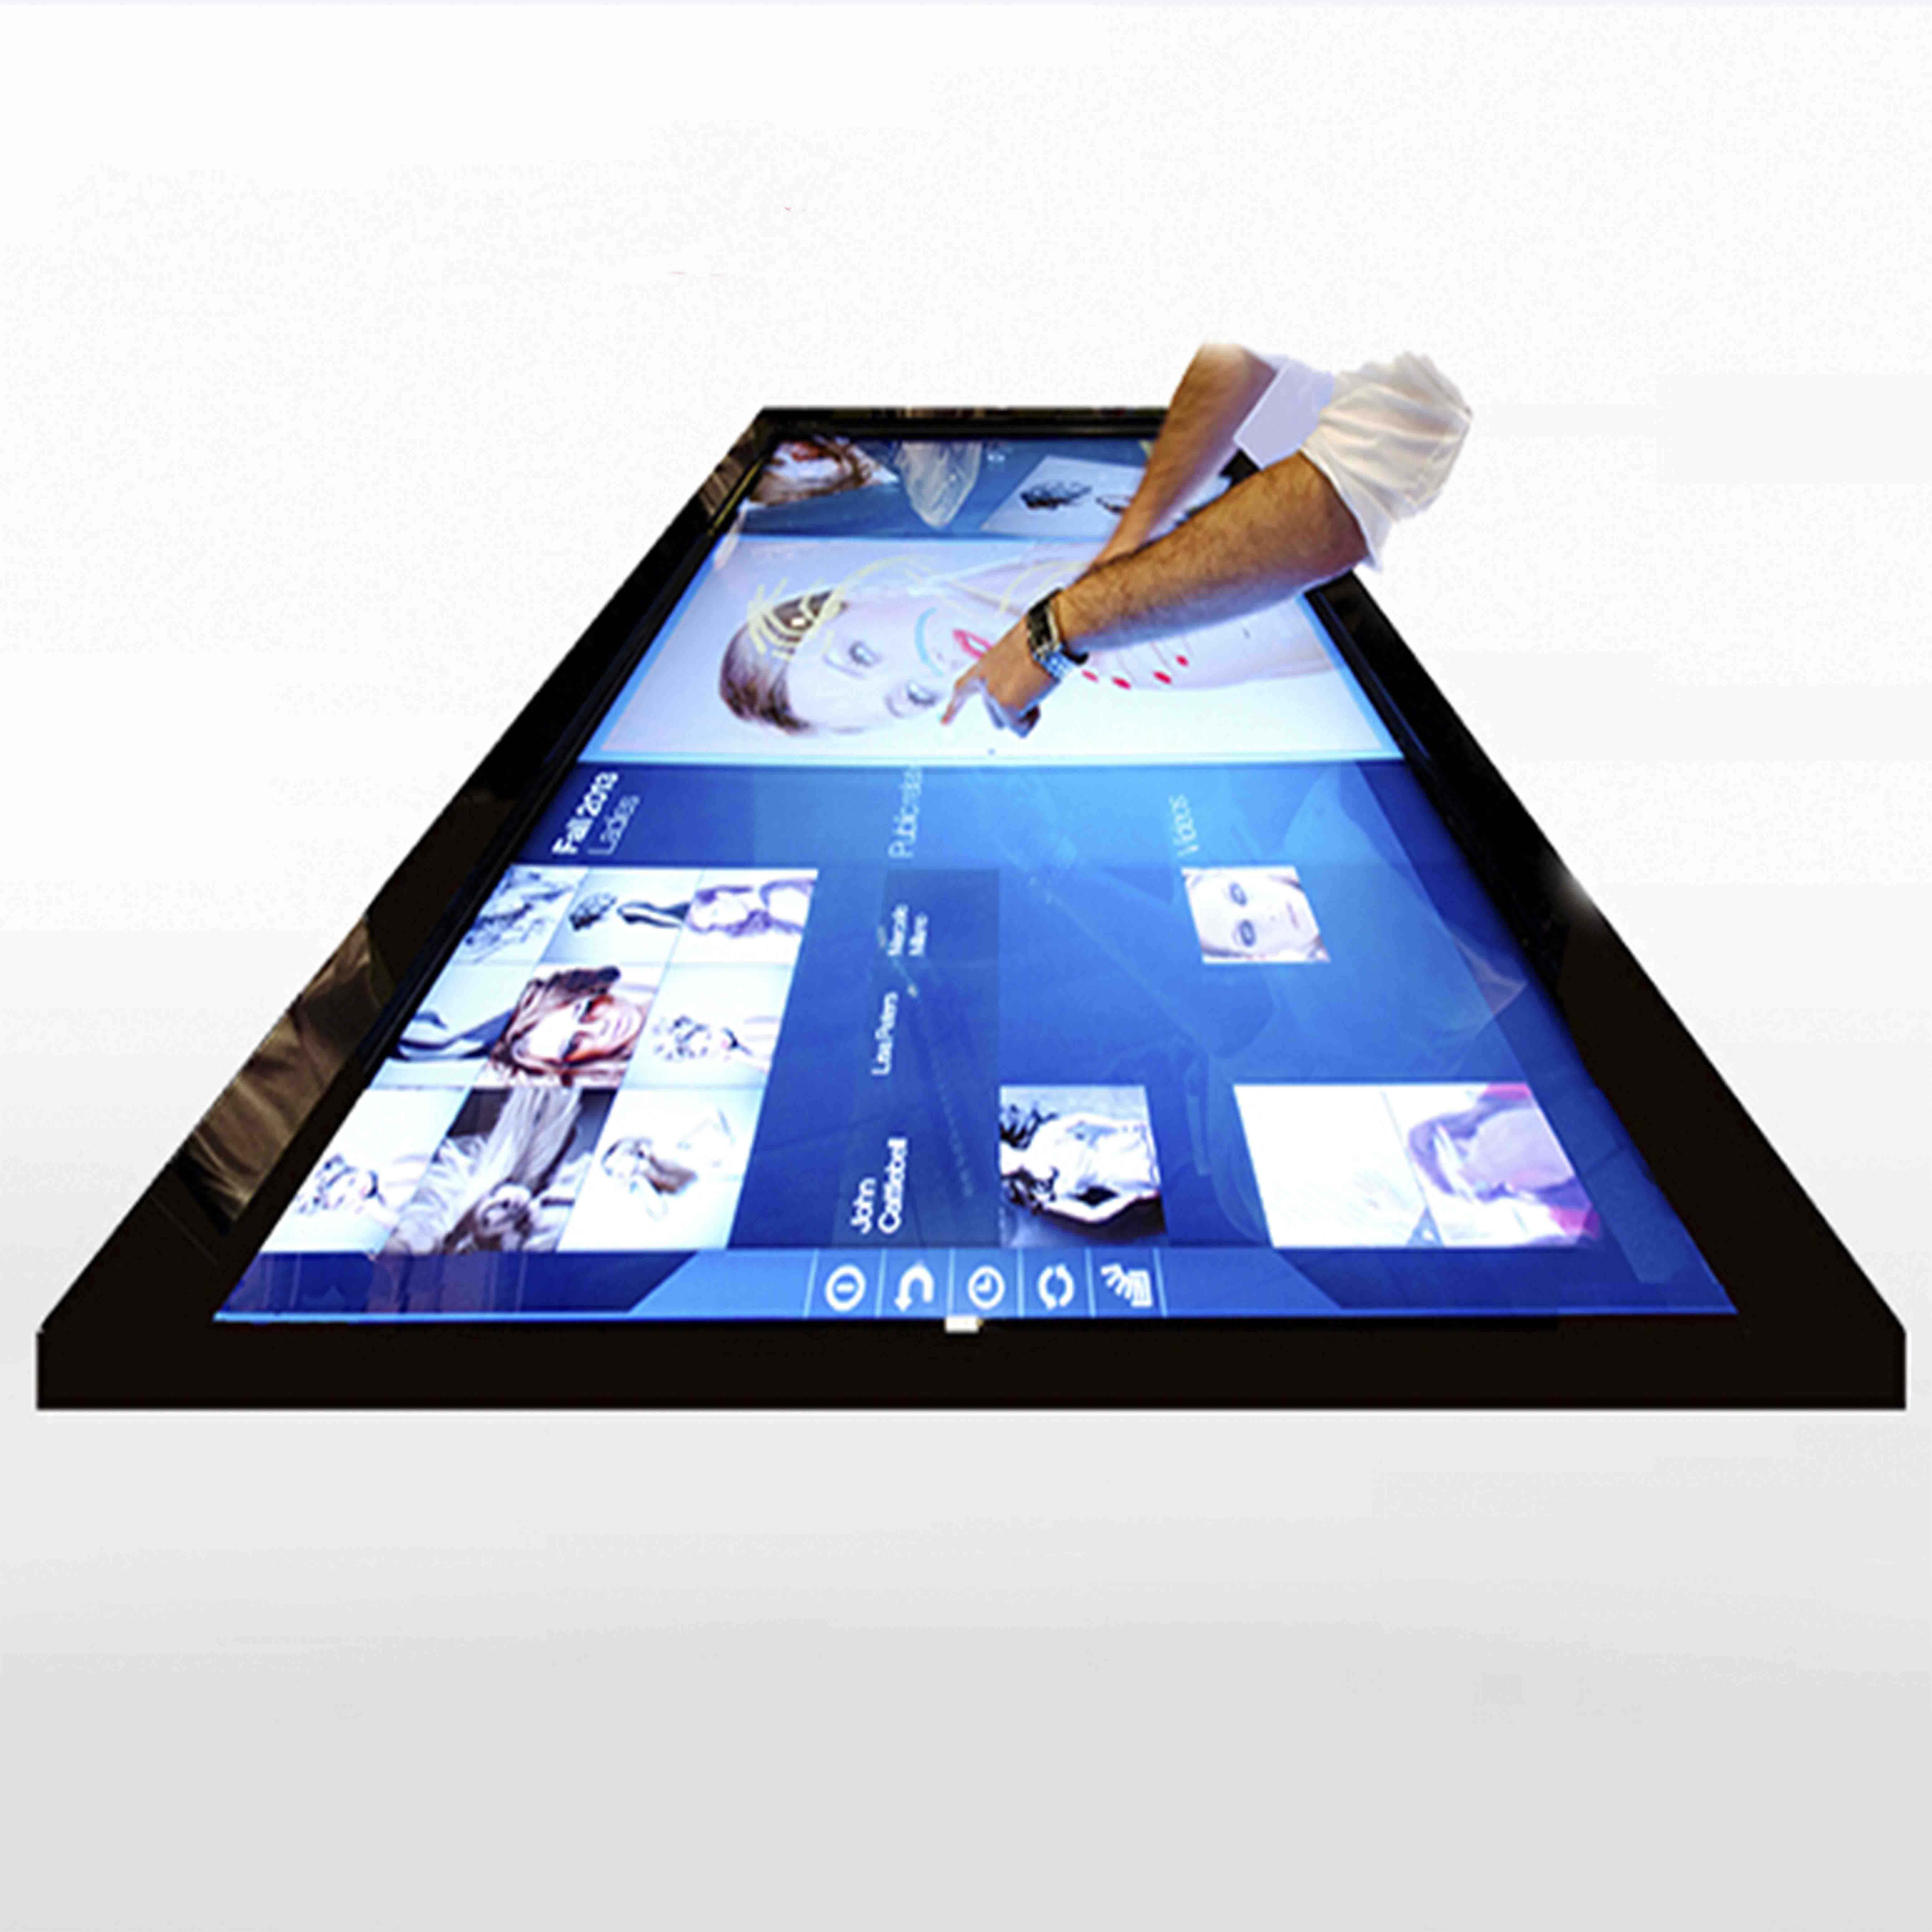 Hot selling 32 42 55 65 70 75 inch open frame ir infrared USB touchscreen multi touch screen overlay kit for LED LCD